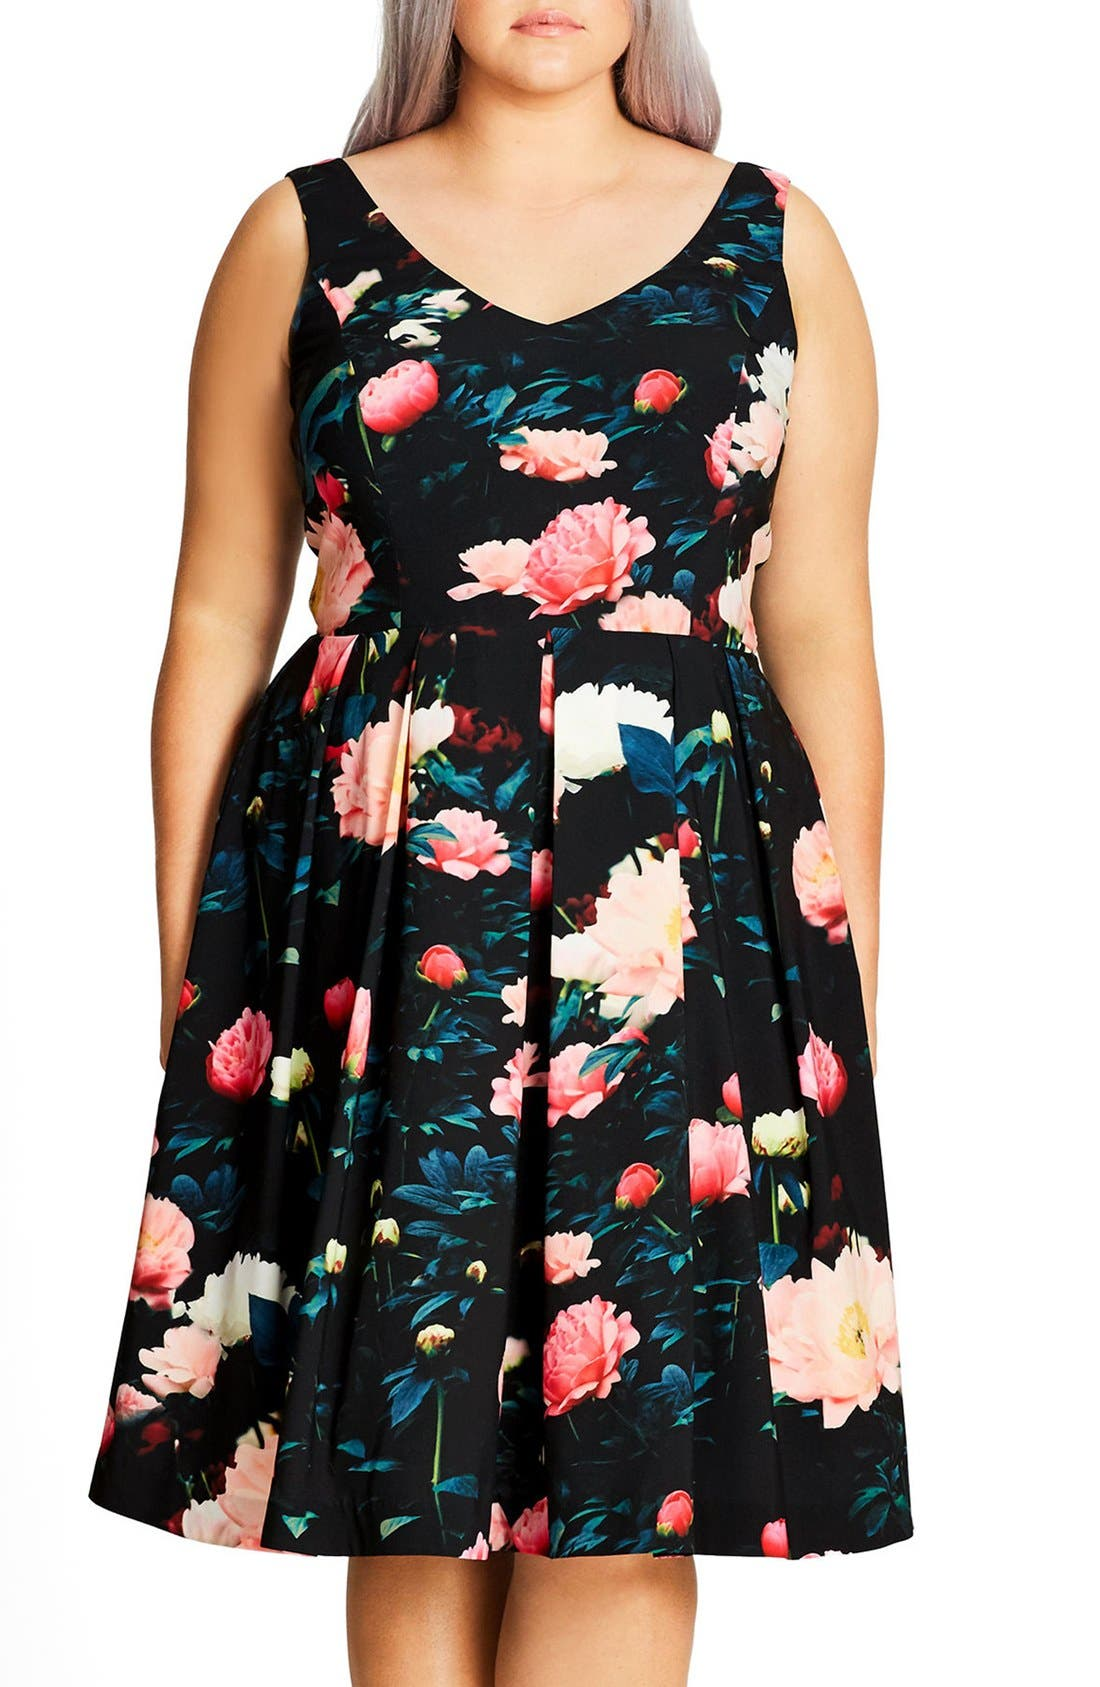 CITY CHIC 'Delight' Floral V-Neck Fit & Flare